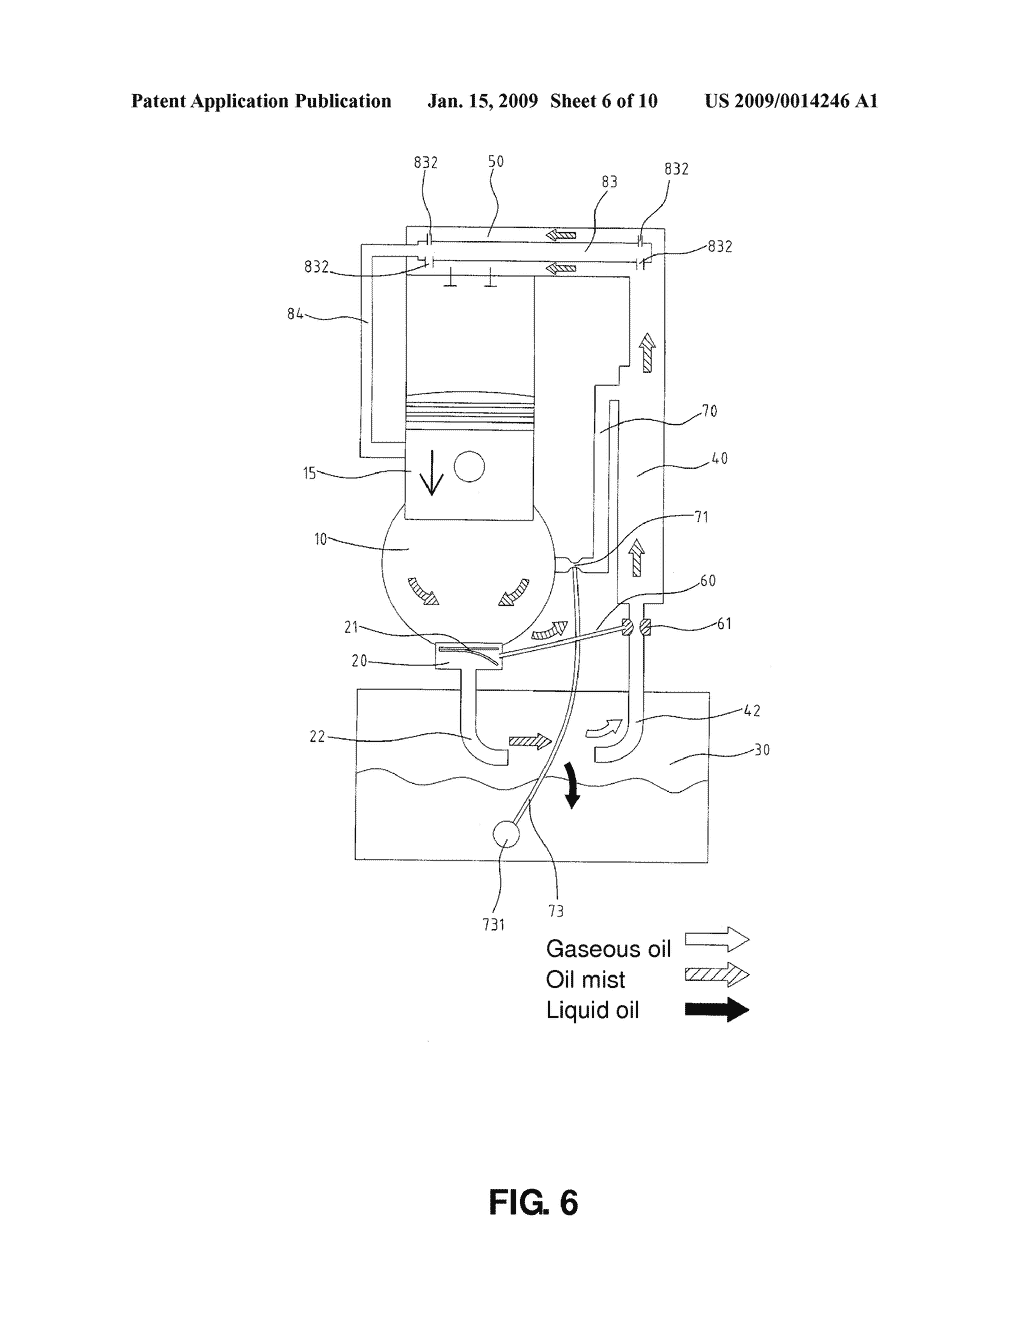 6 Lead Single Phase Motor Wiring Diagram With Capacitor from lh6.googleusercontent.com